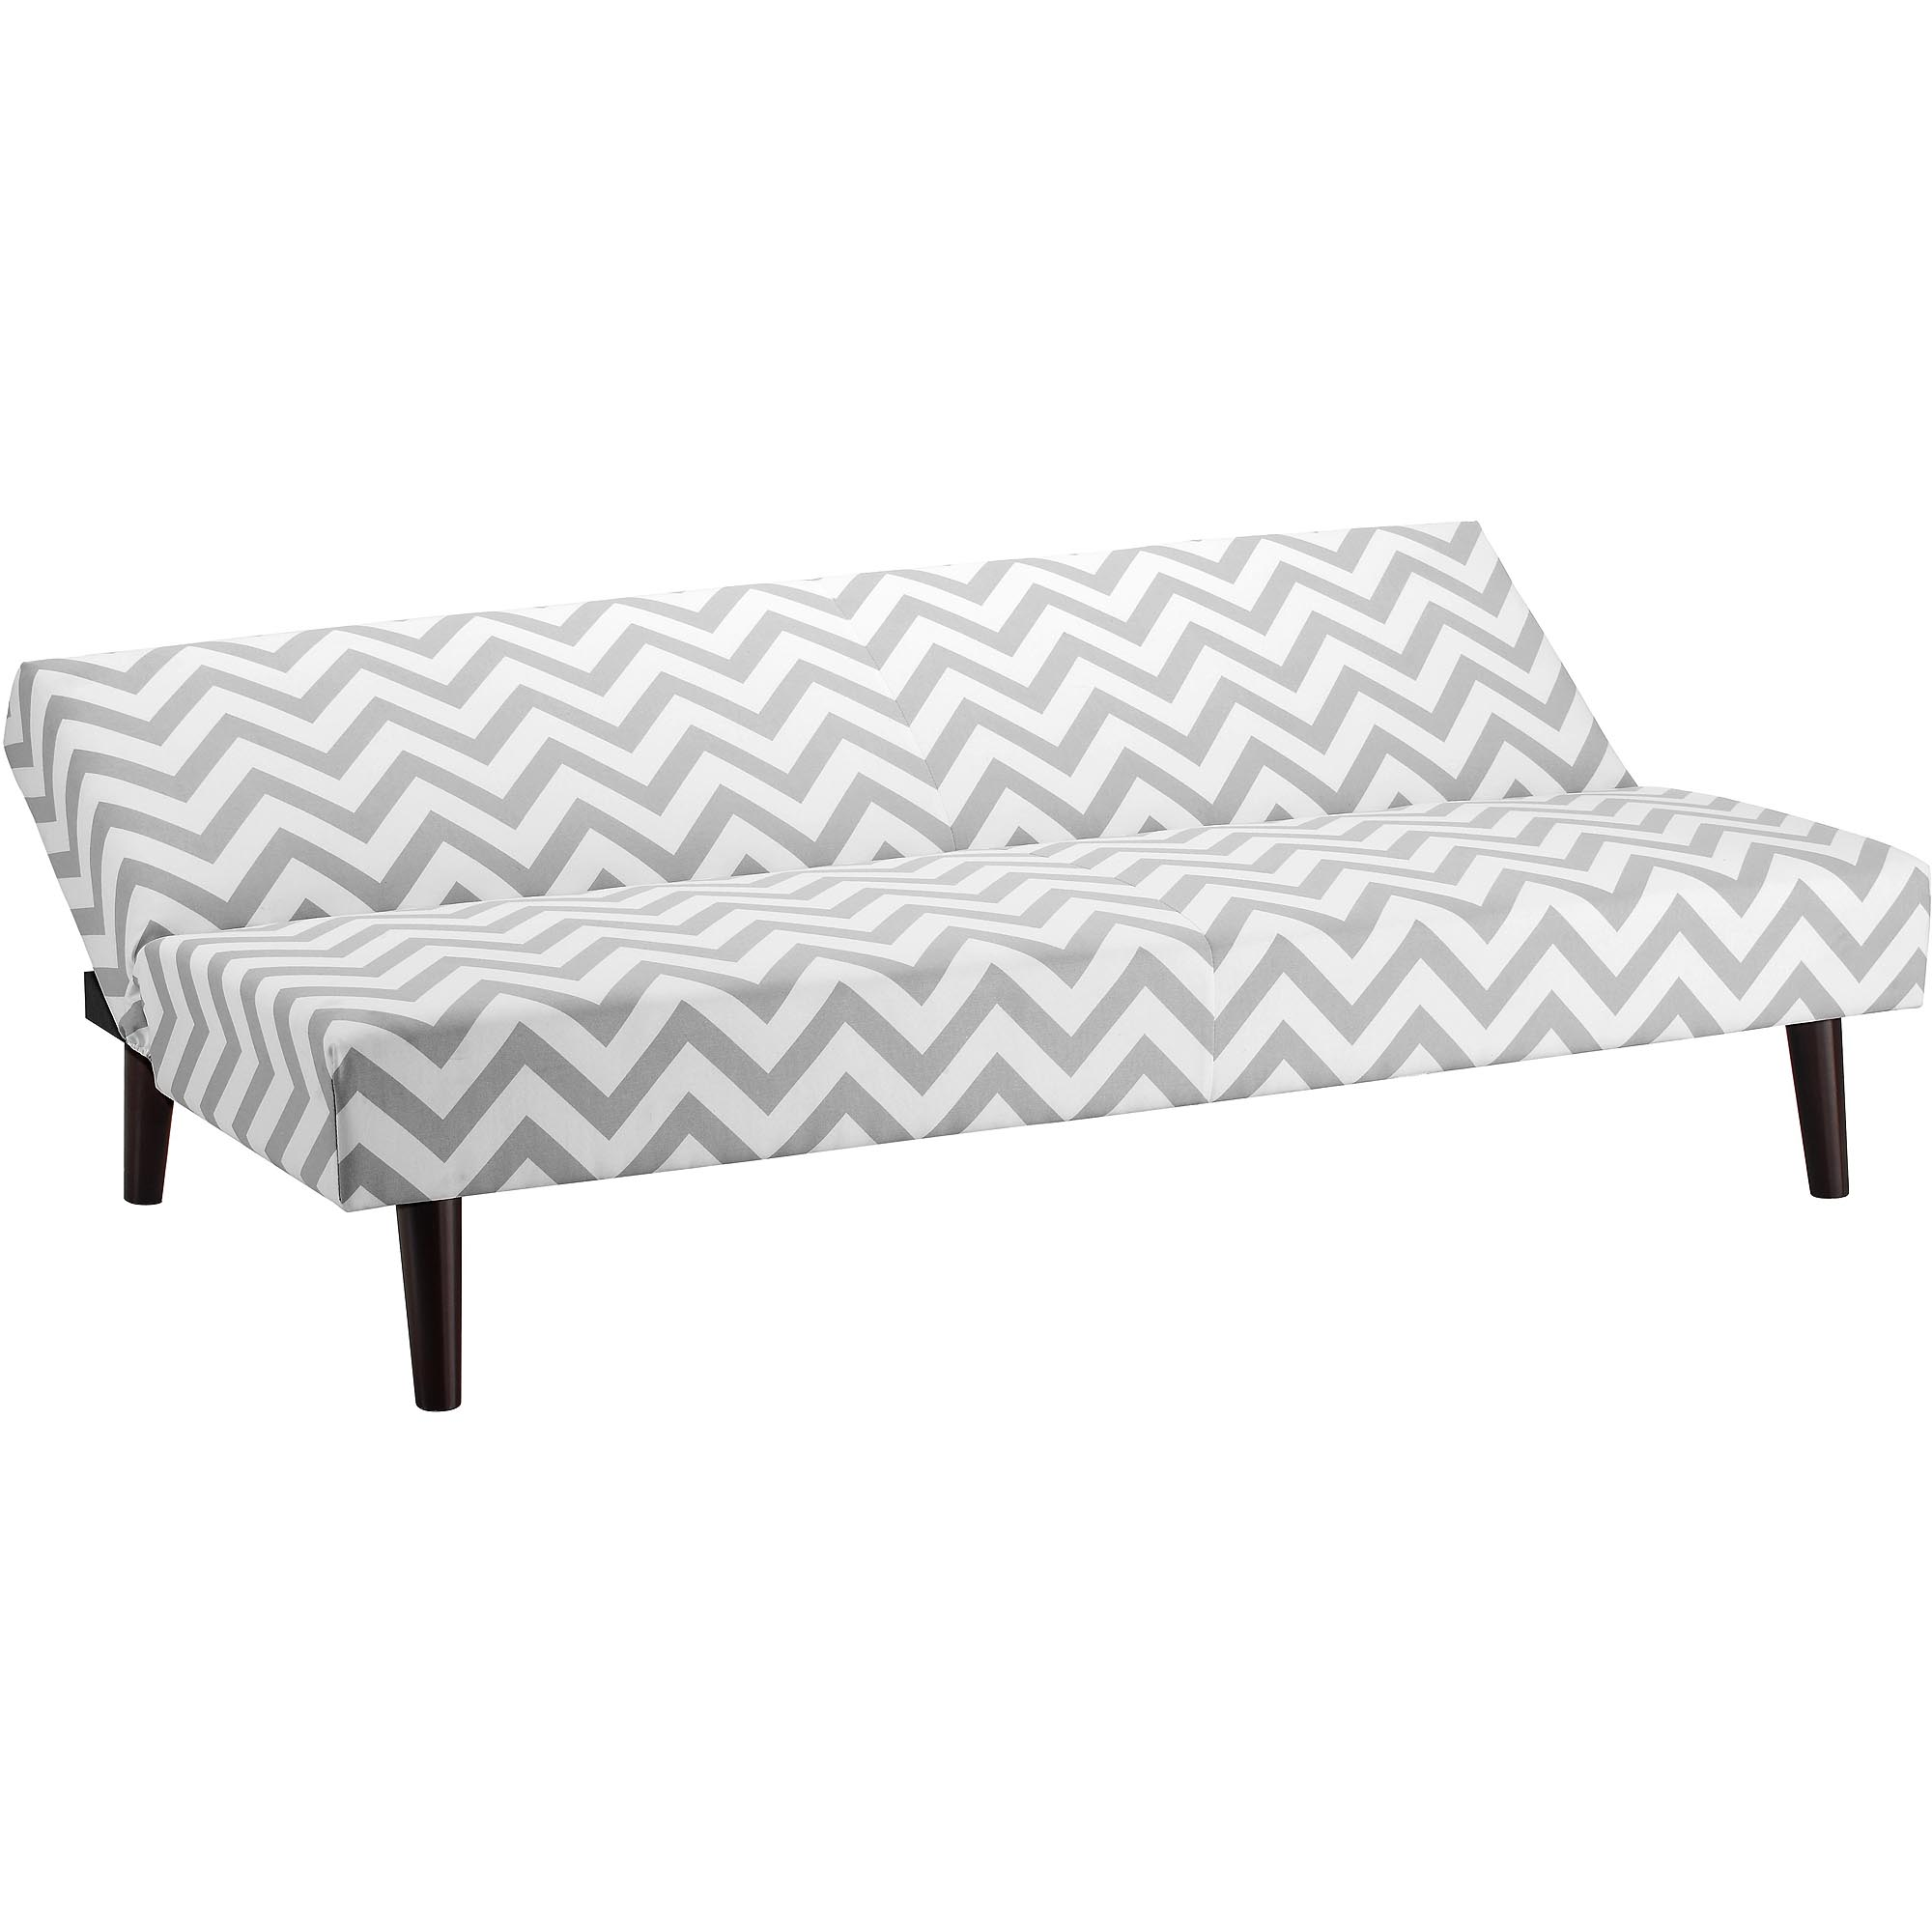 julia cupholder convertible futon sofa bed white alice style walmart home decor